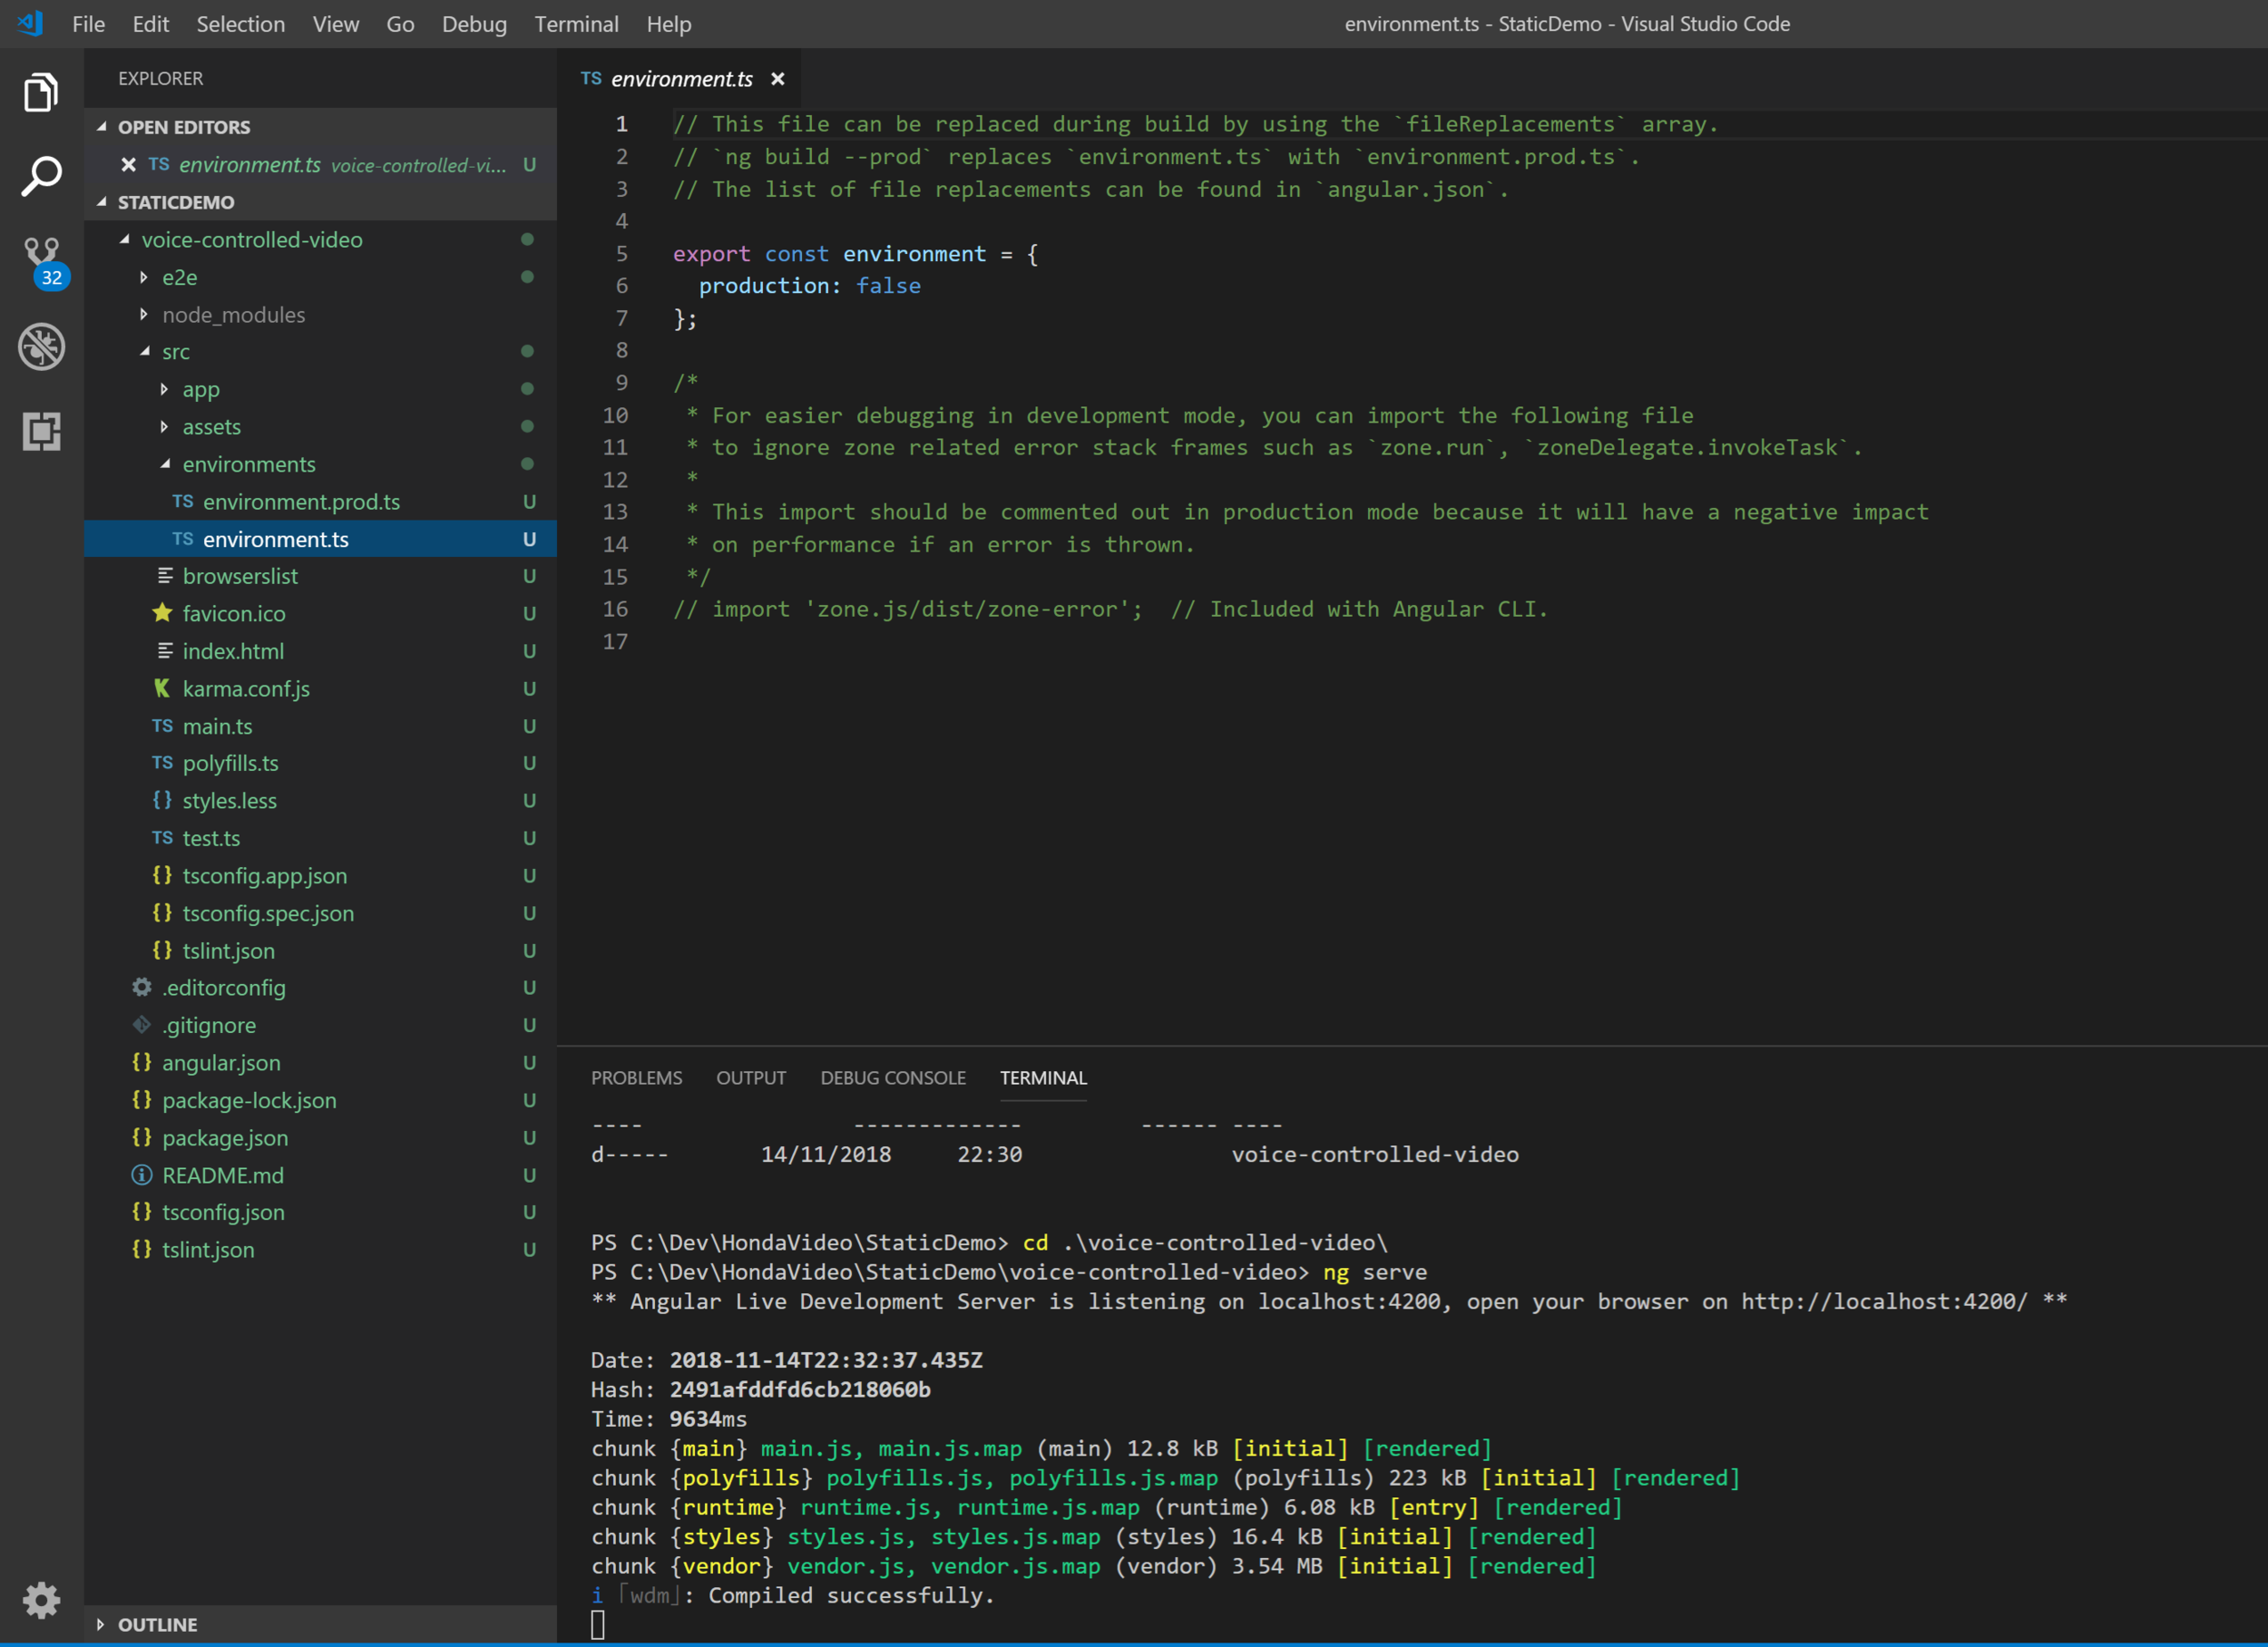 VS Code showing Angular environment files.